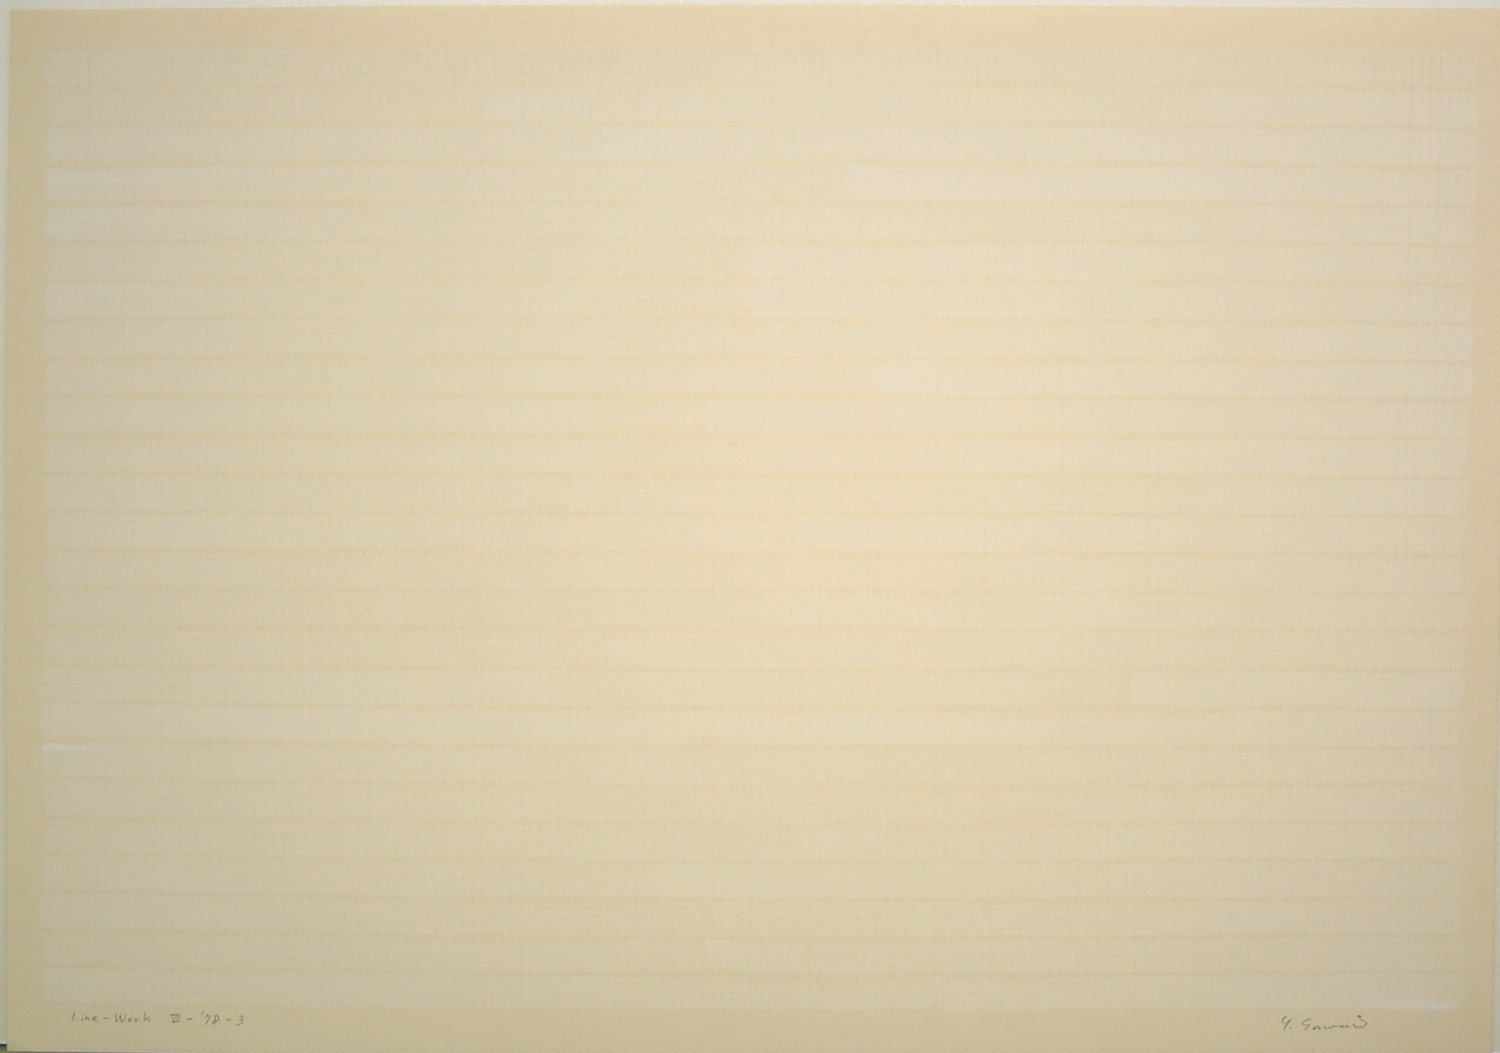 Line-Work VII-78-3|Acrylic, pencil on paper|54 x 78 cm|1978